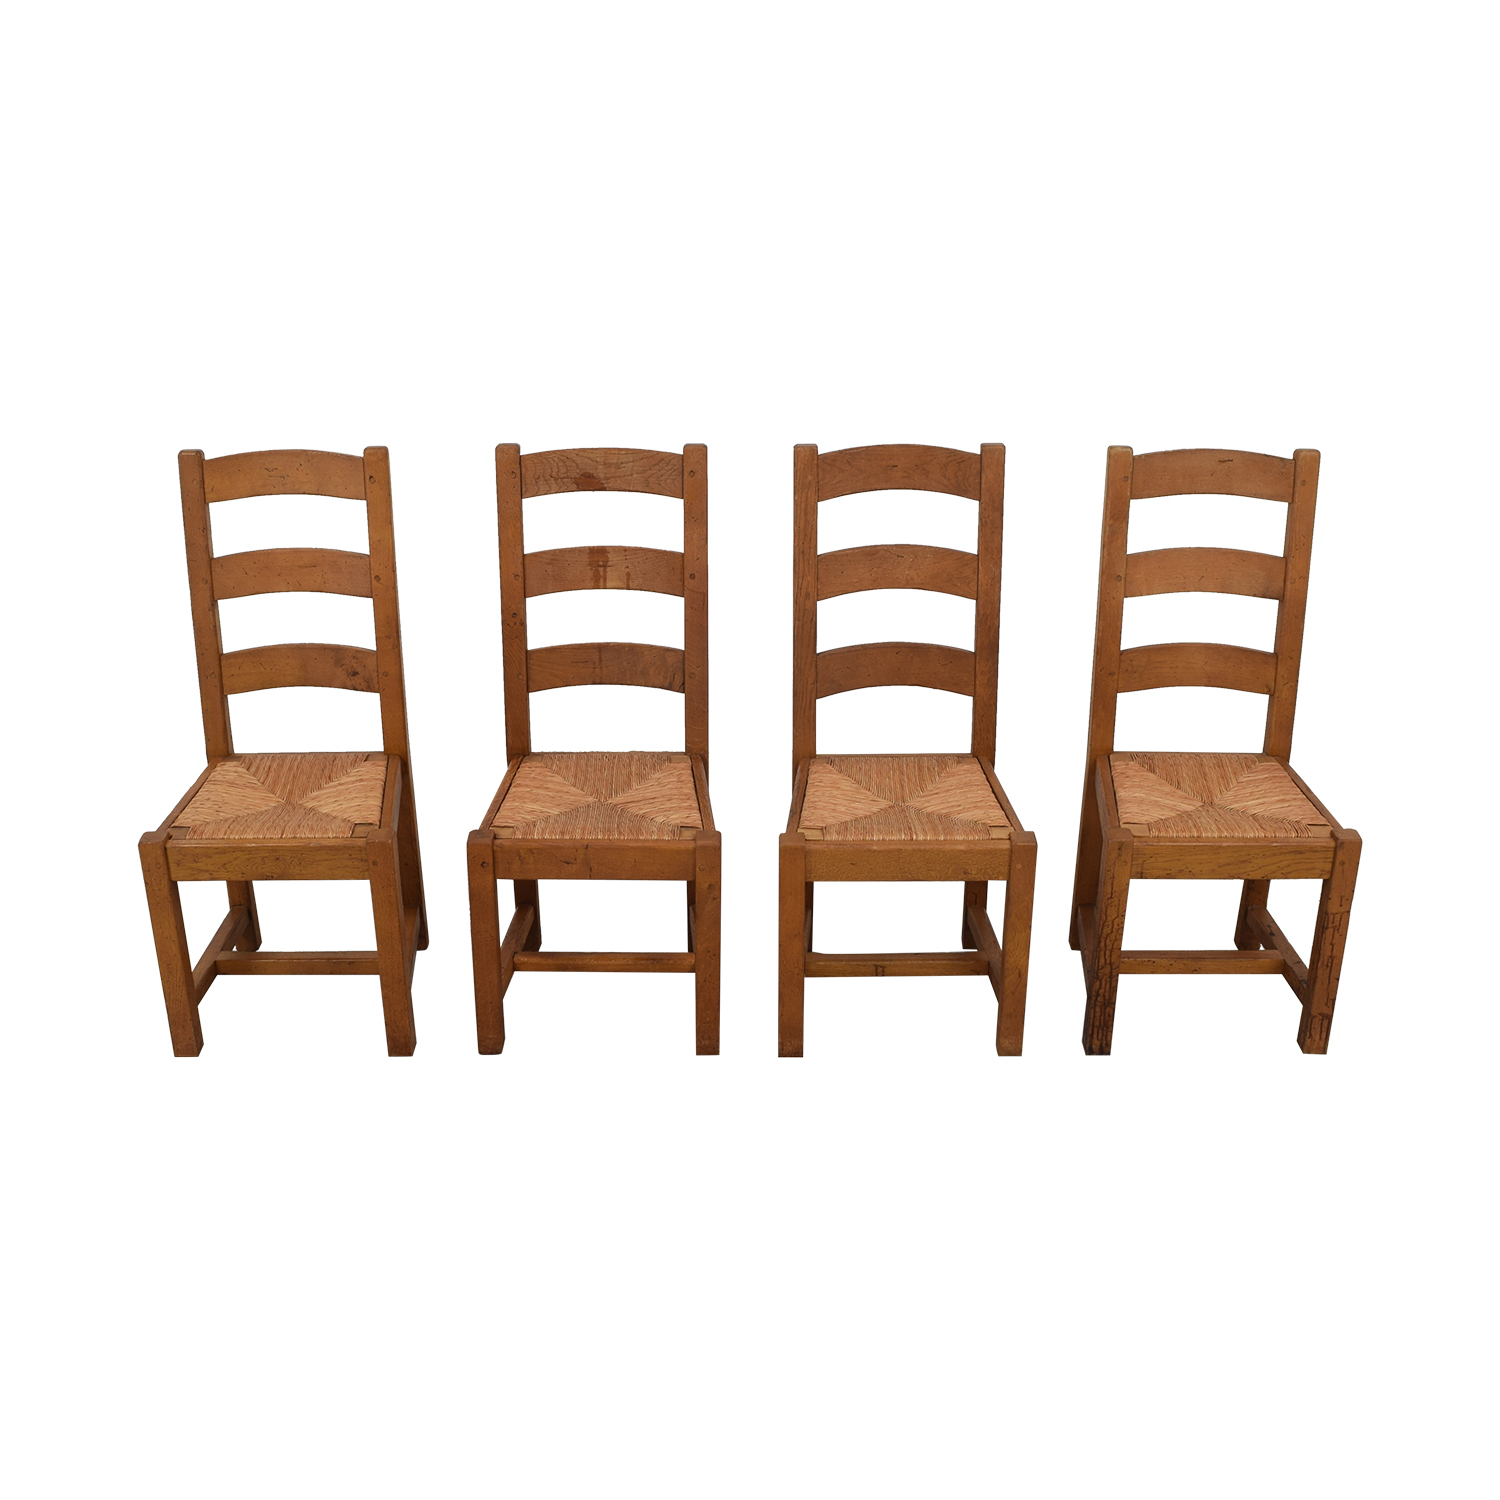 Crate & Barrel Crate & Barrel French Farm Dining Chairs on sale